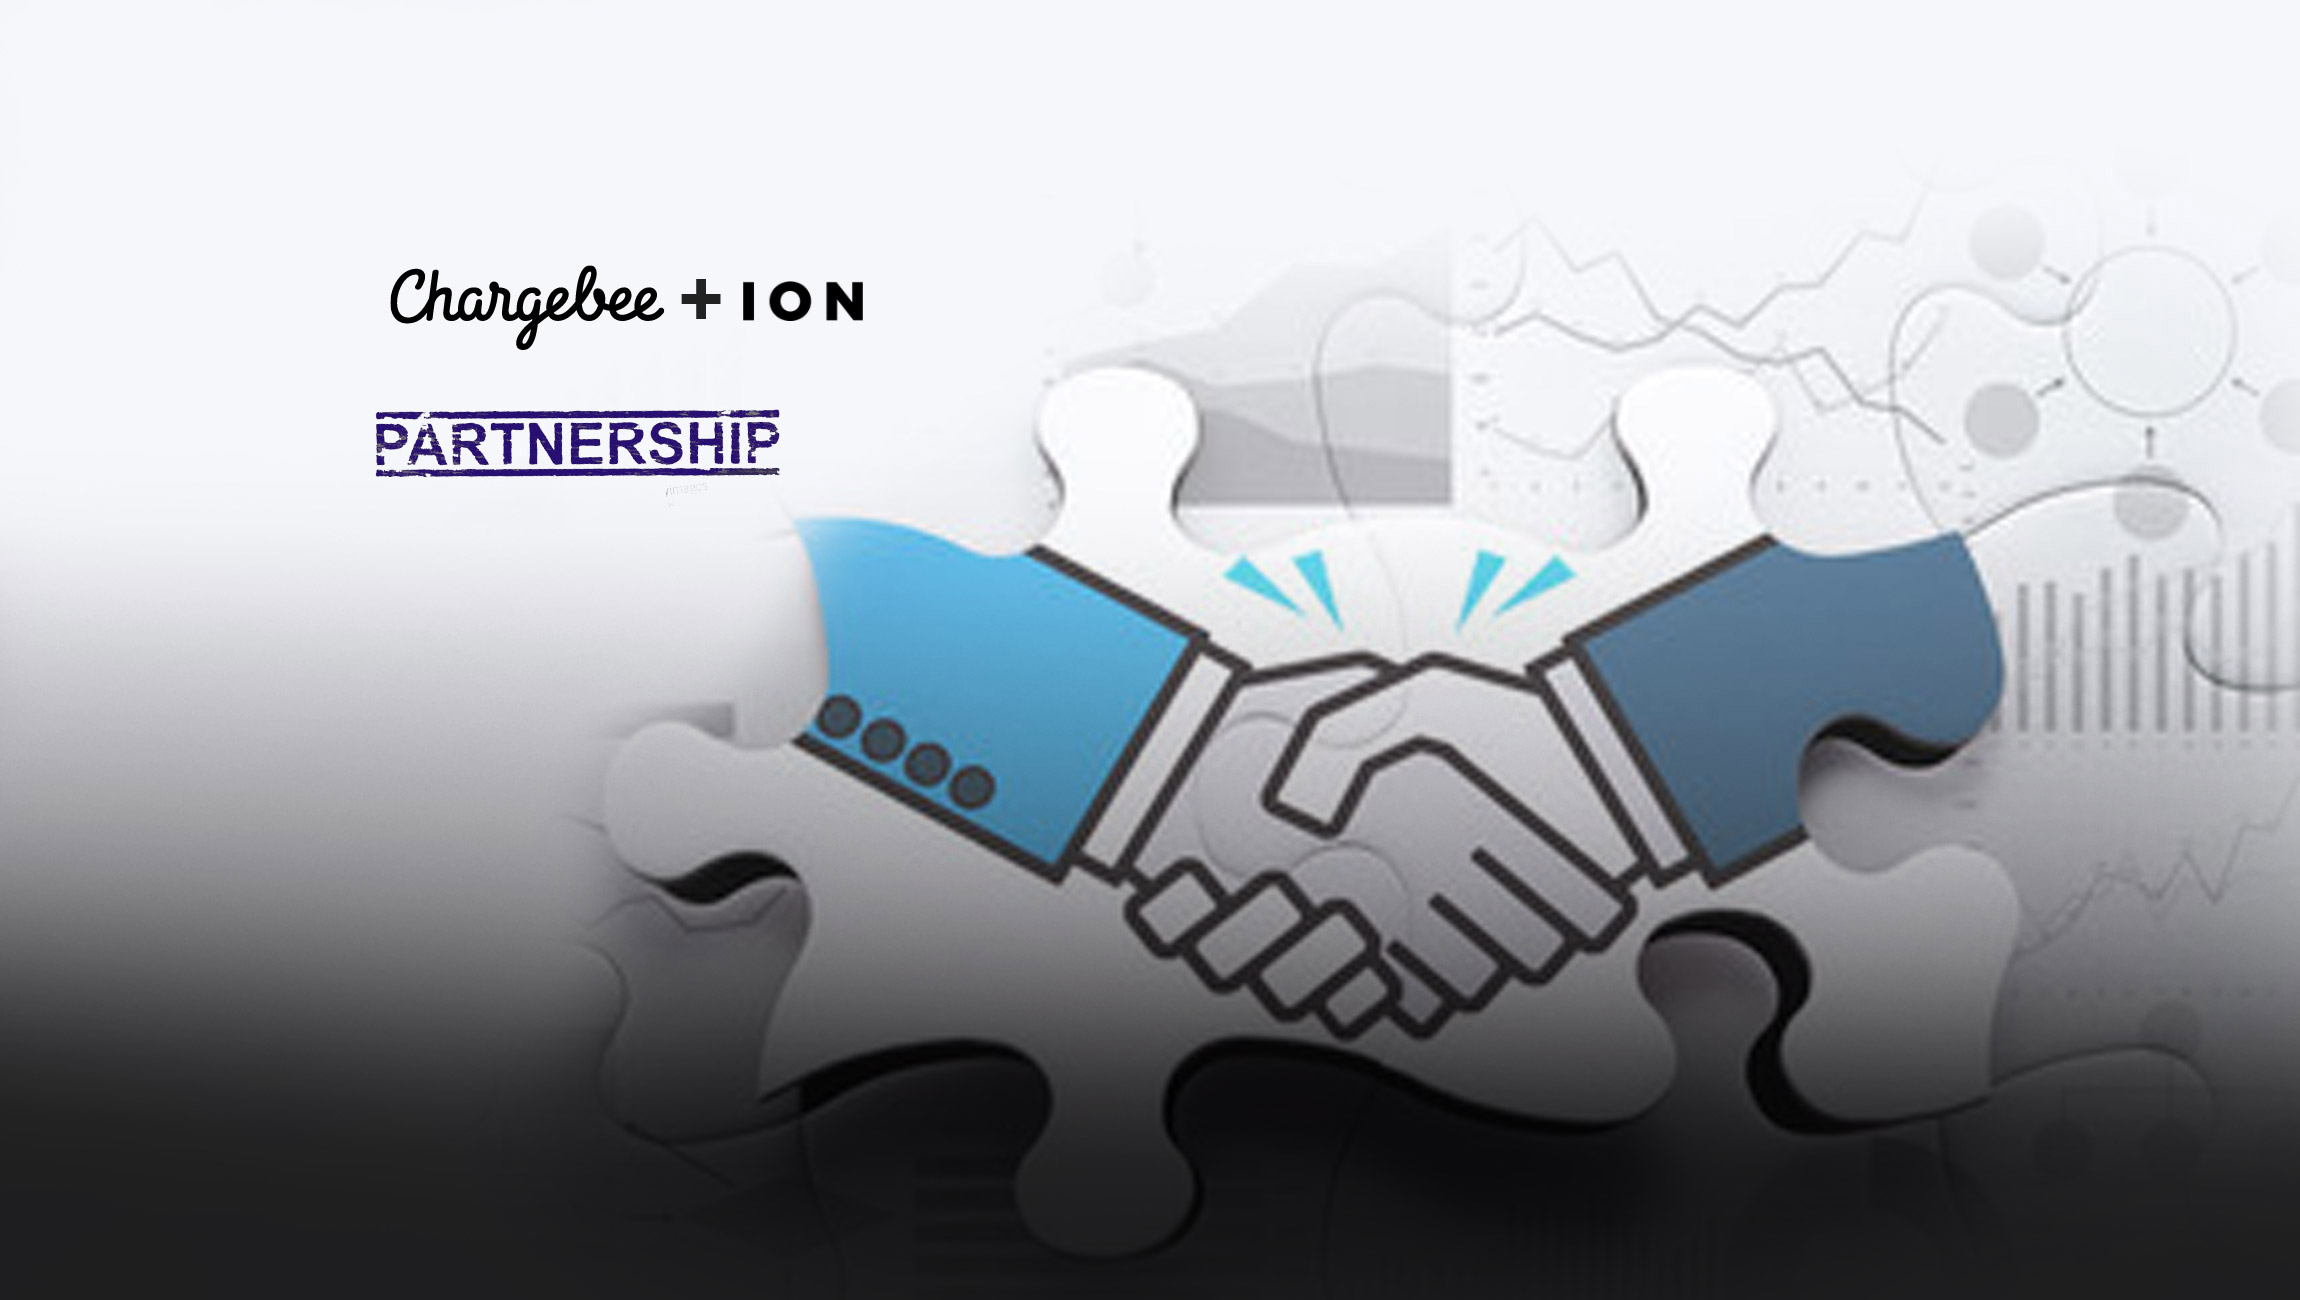 Chargebee and ION Partners to Deliver a Full Lead-to-Ledger Customer Offering That Accelerates Growth